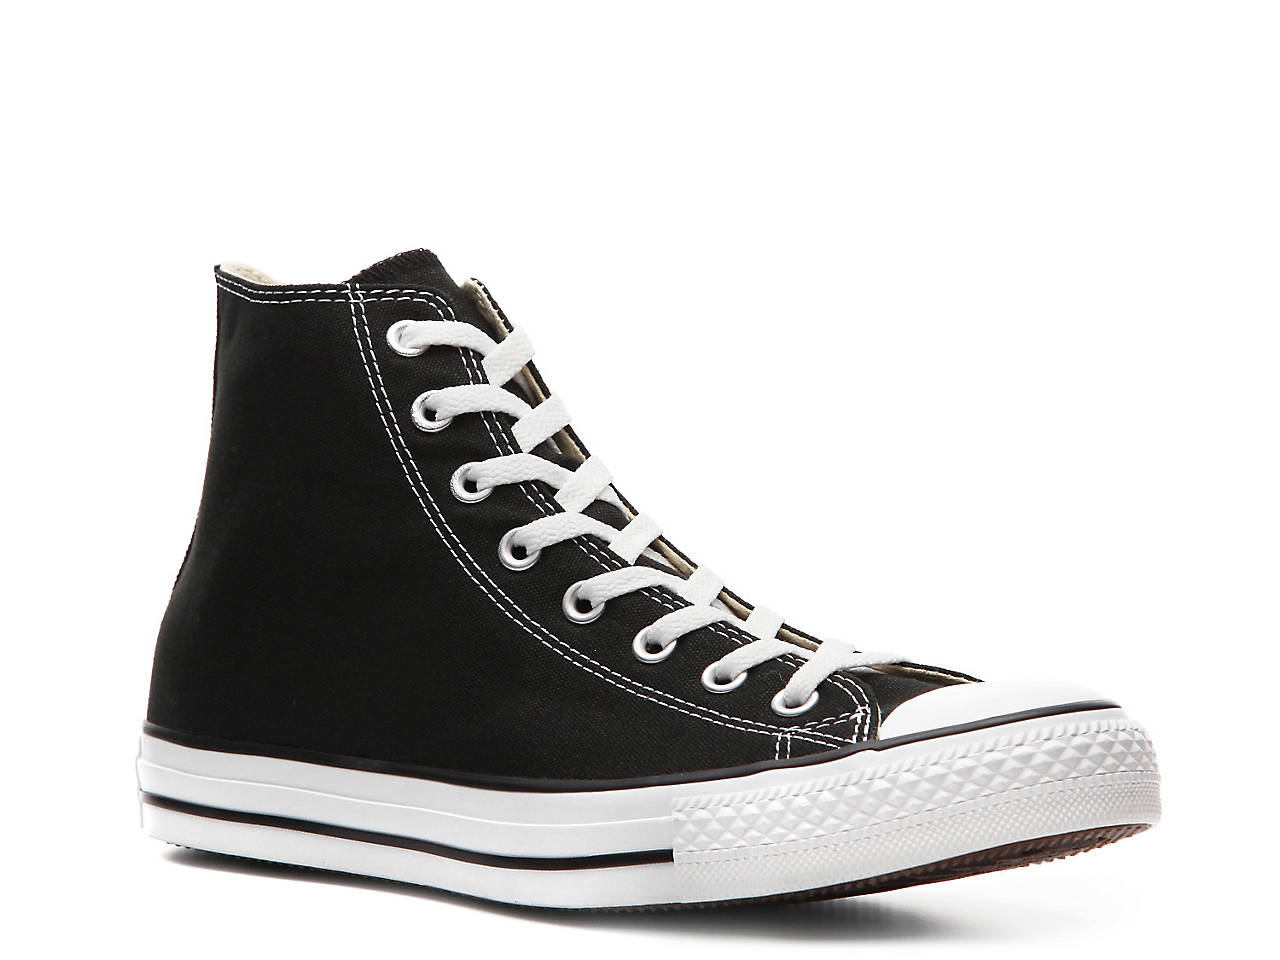 c68b1e0ca452 Converse Chuck Taylor All Star High-Top Sneaker - Men s Men s Shoes ...